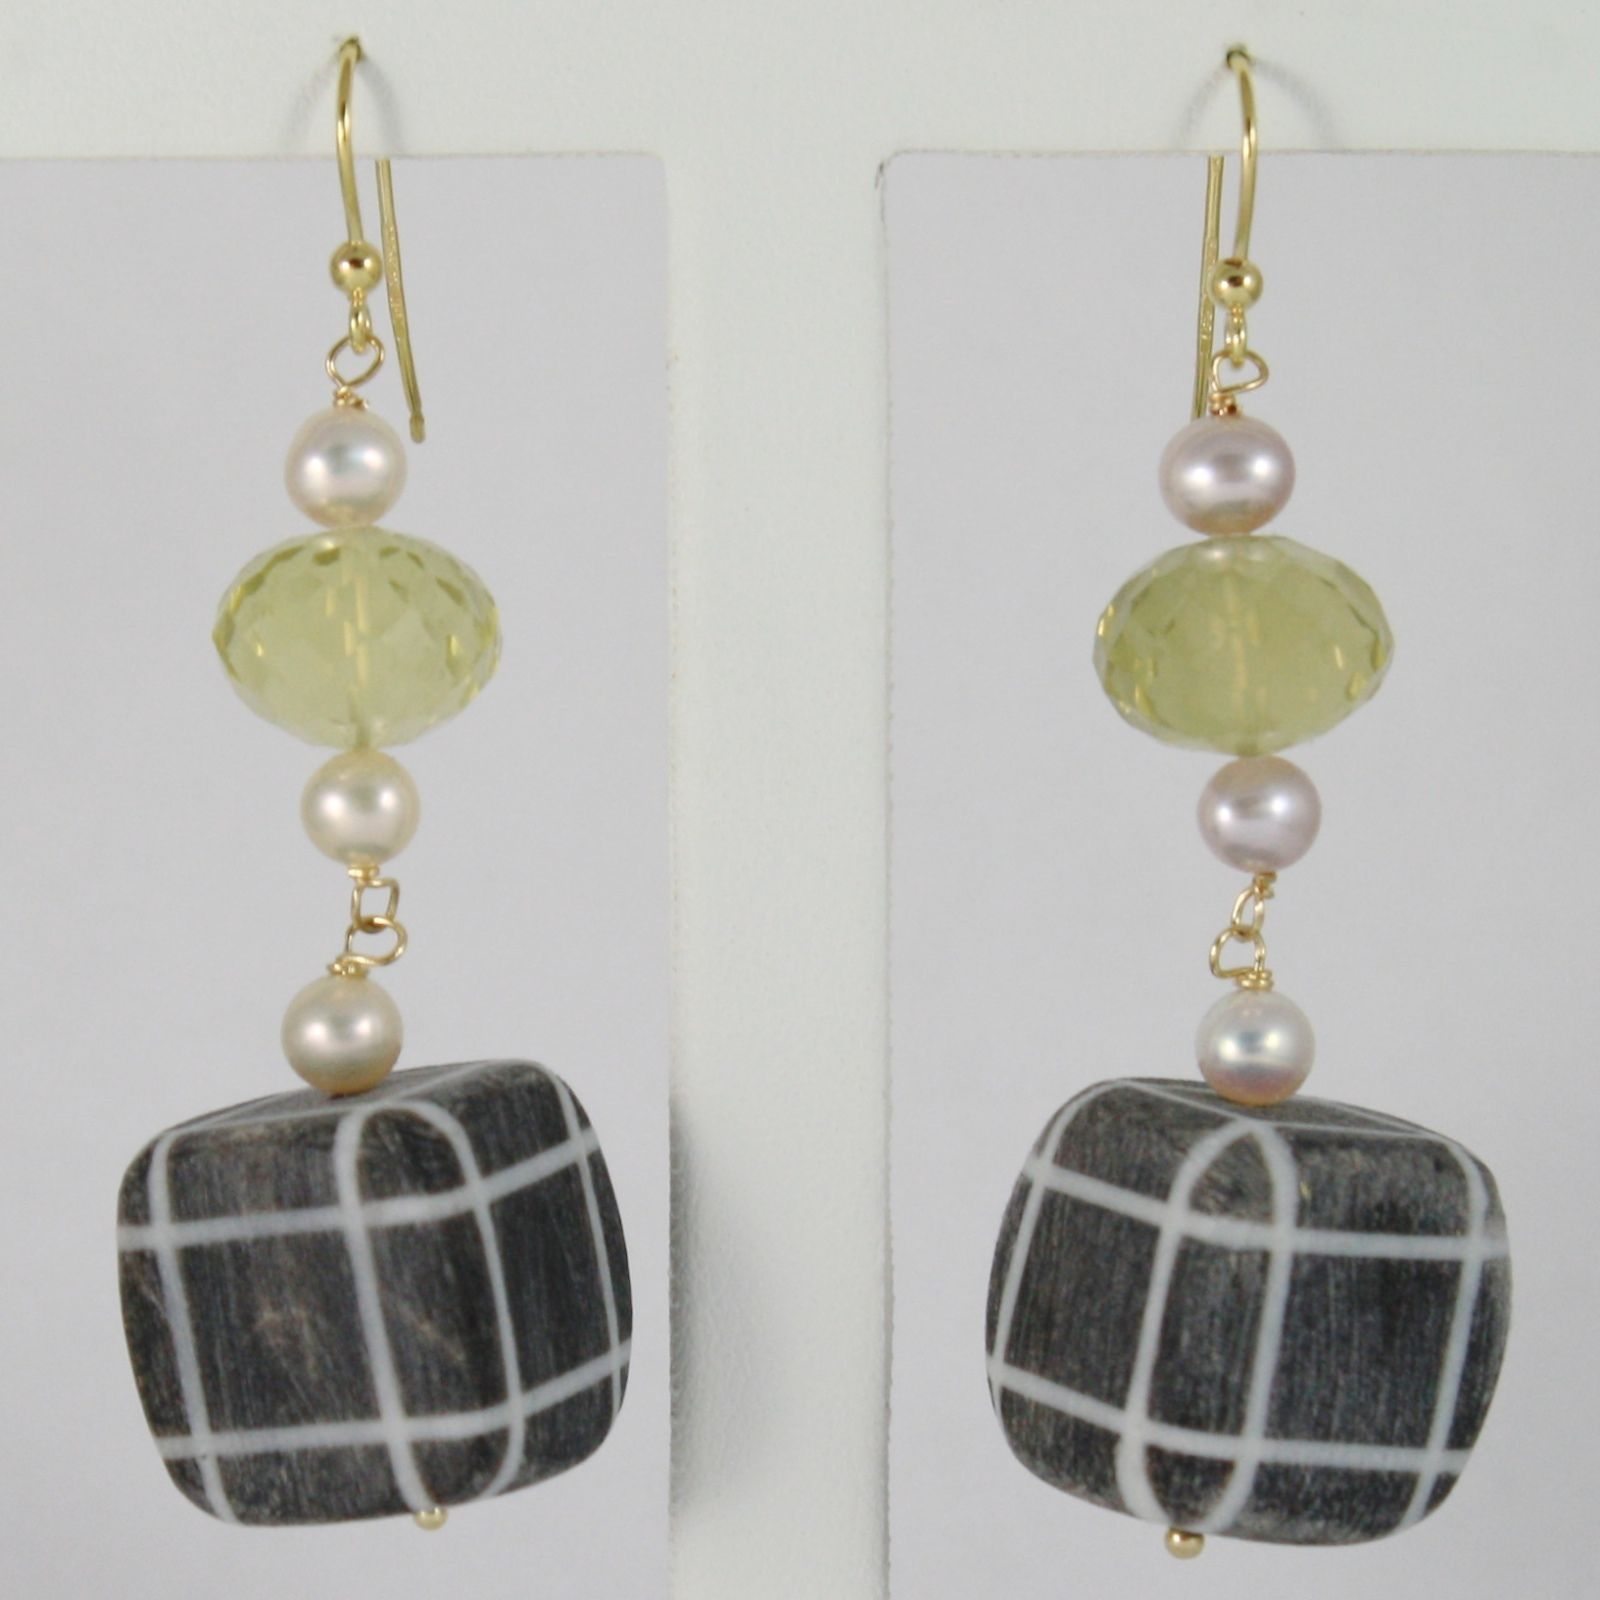 18K YELLOW GOLD PENDANT EARRINGS BIG STRIPED SQUARE HORN PEARLS AND LEMON QUARTZ